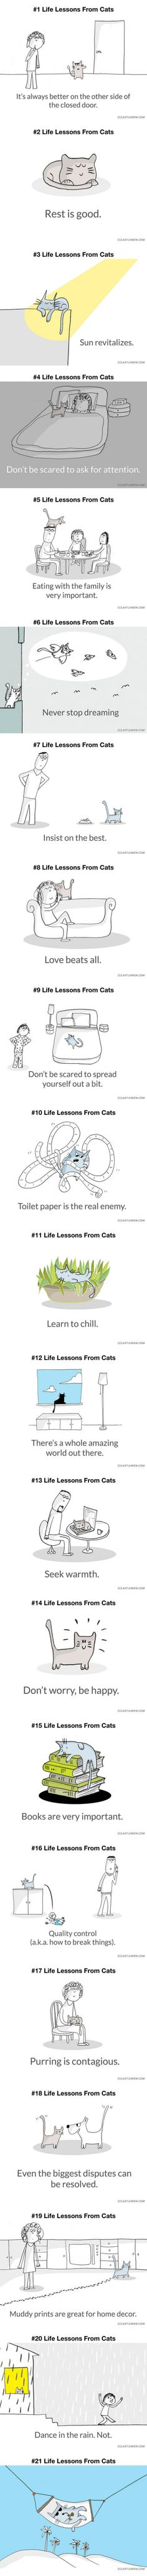 21 Life Lessons From Cats (By Last Lemon)